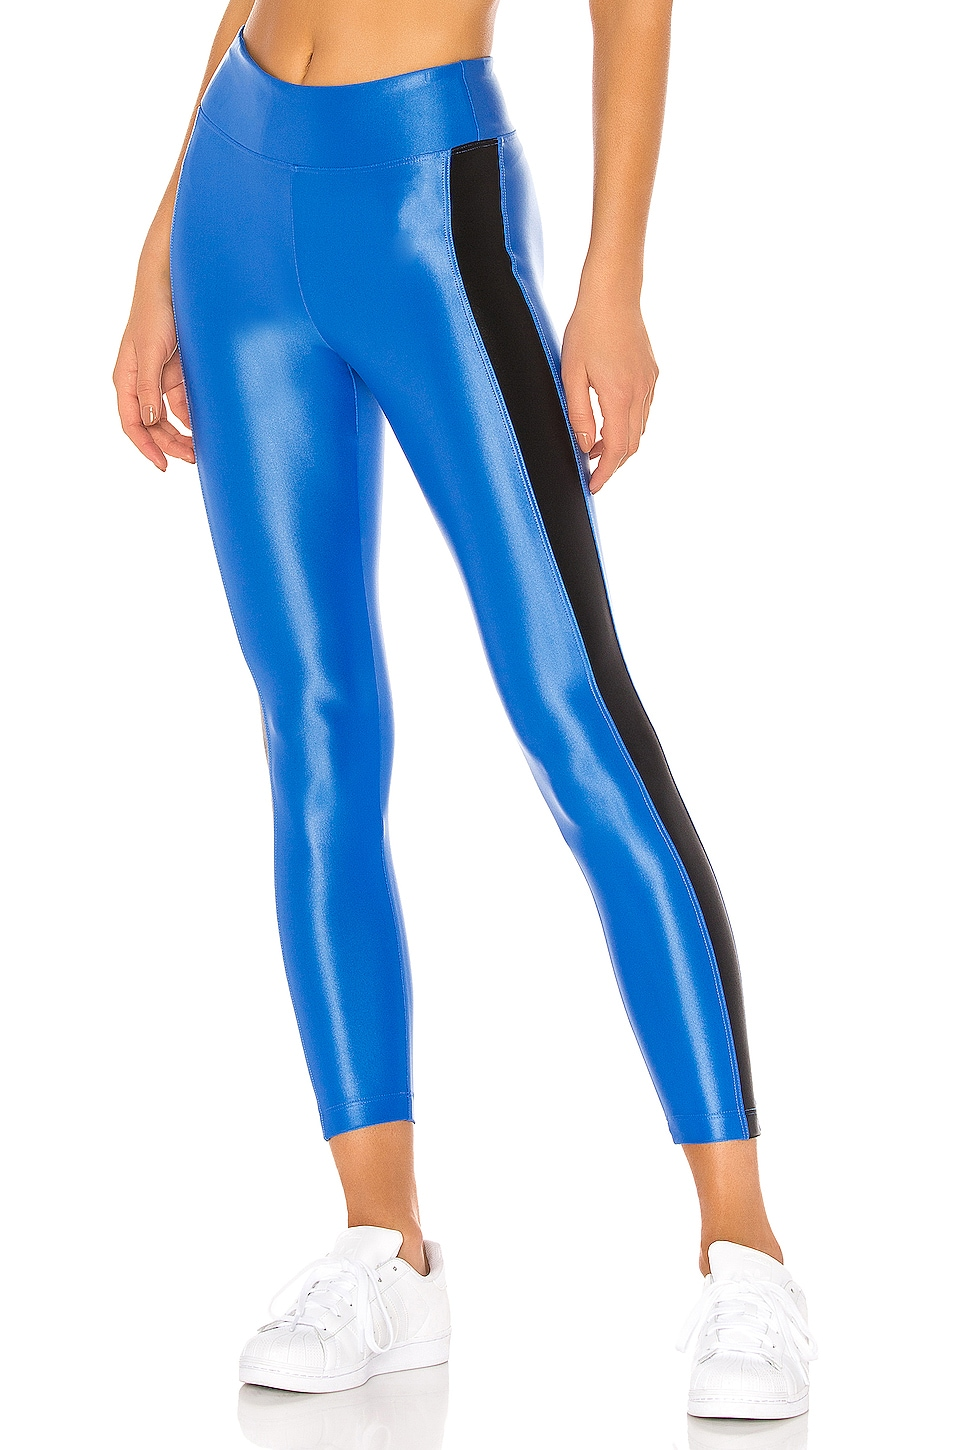 KORAL Dynamic Duo High Rise Infinity Legging in Aura & Black